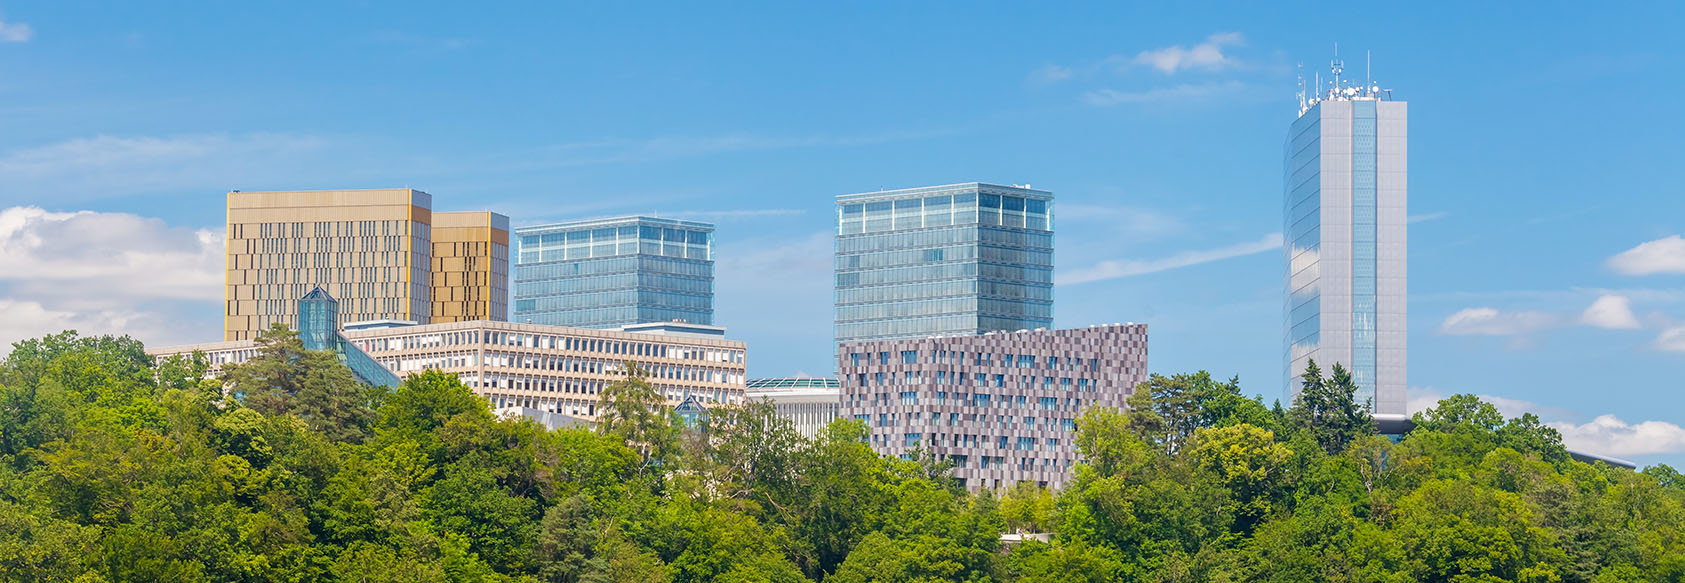 Buildings in Luxembourg, including three in which EP translators work